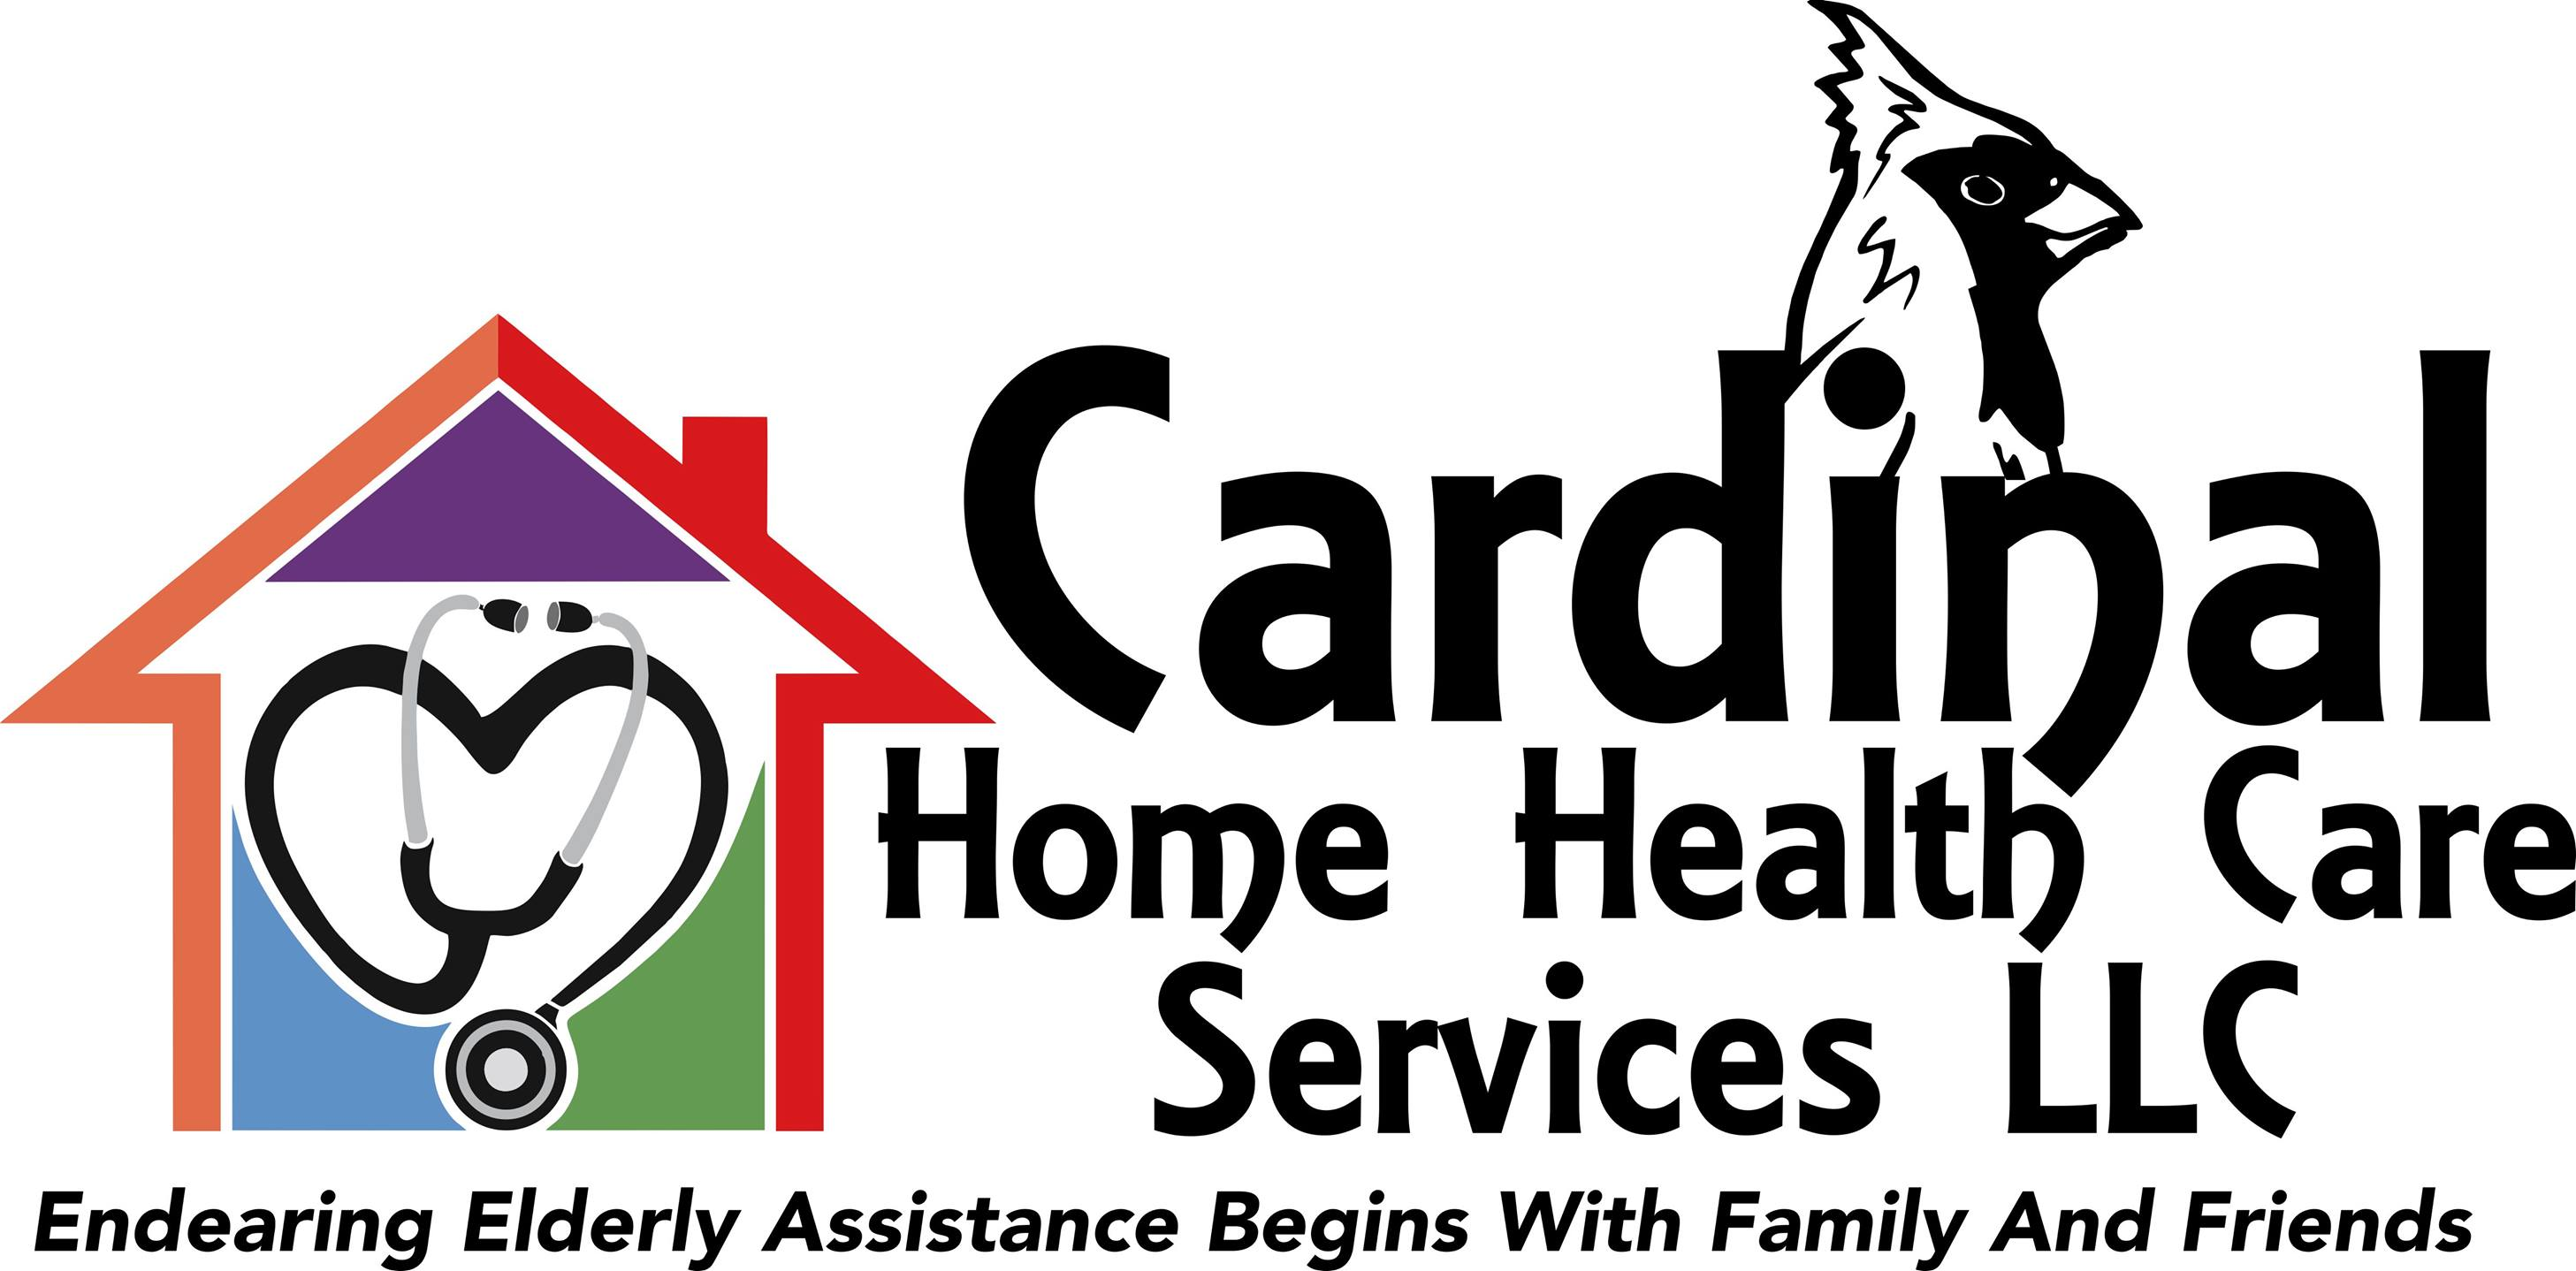 Cardinal Home Health Services LLC